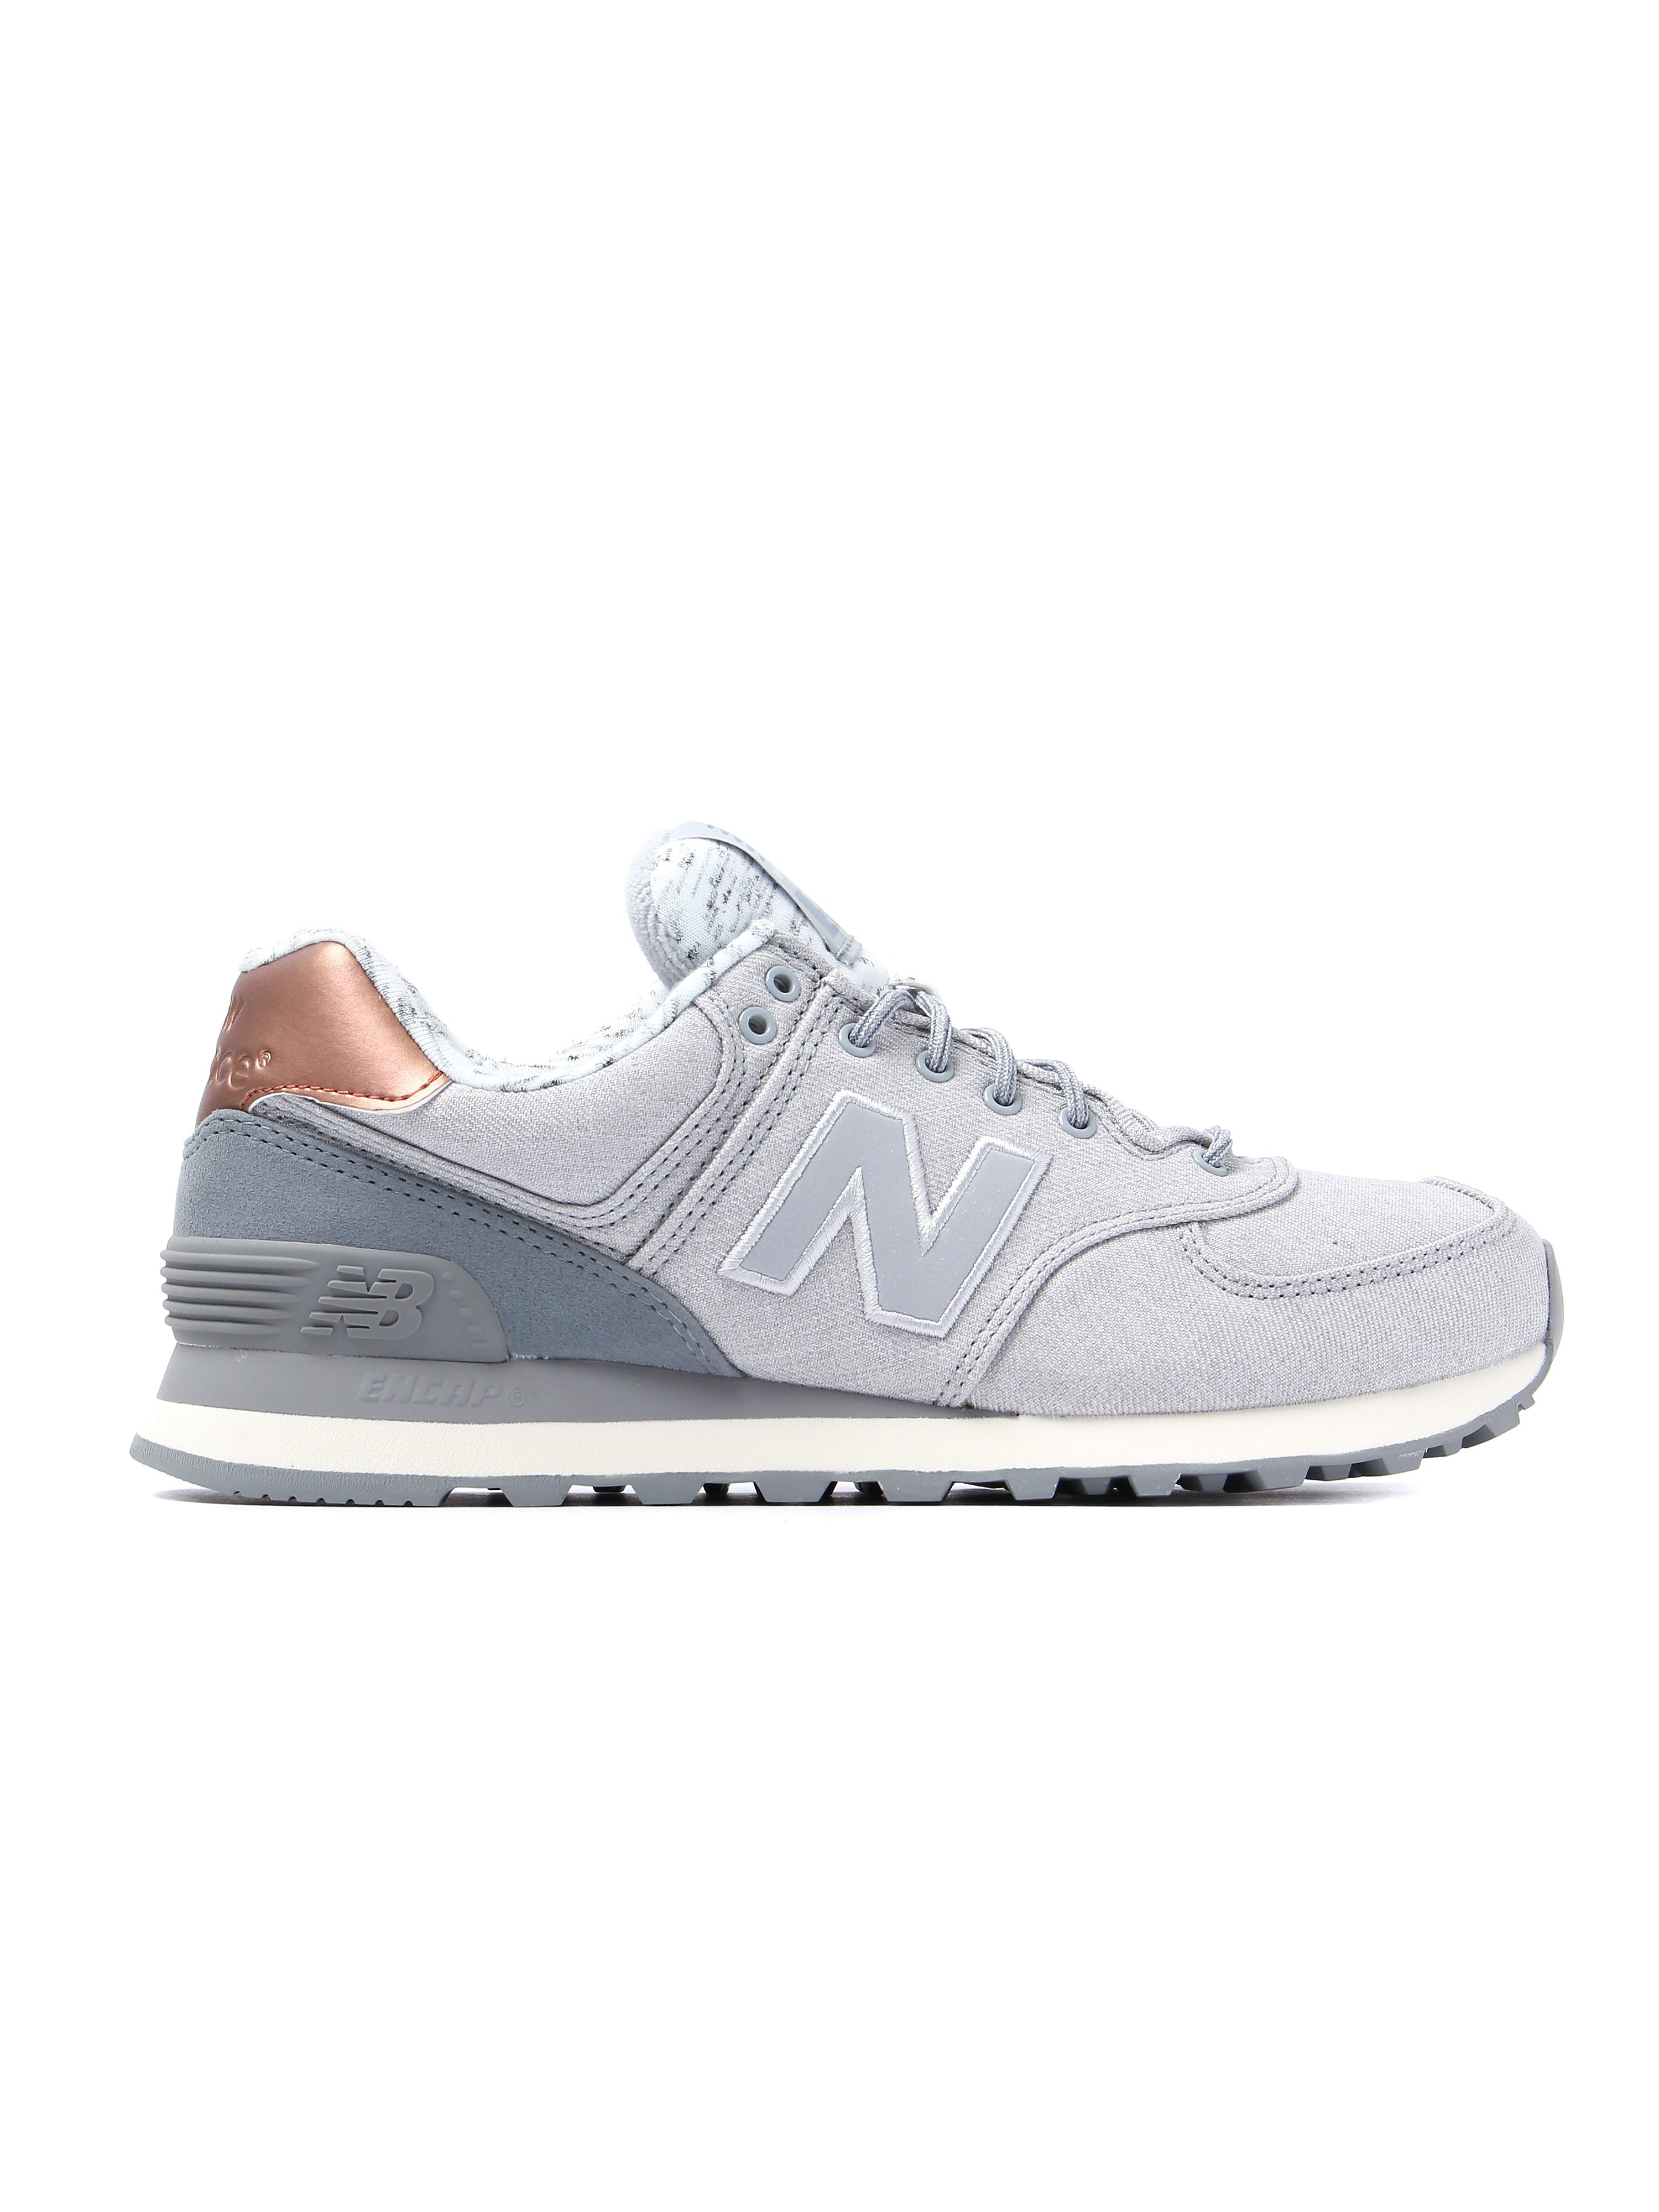 New Balance Women's 574 Low Top Trainers - Grey & Gold